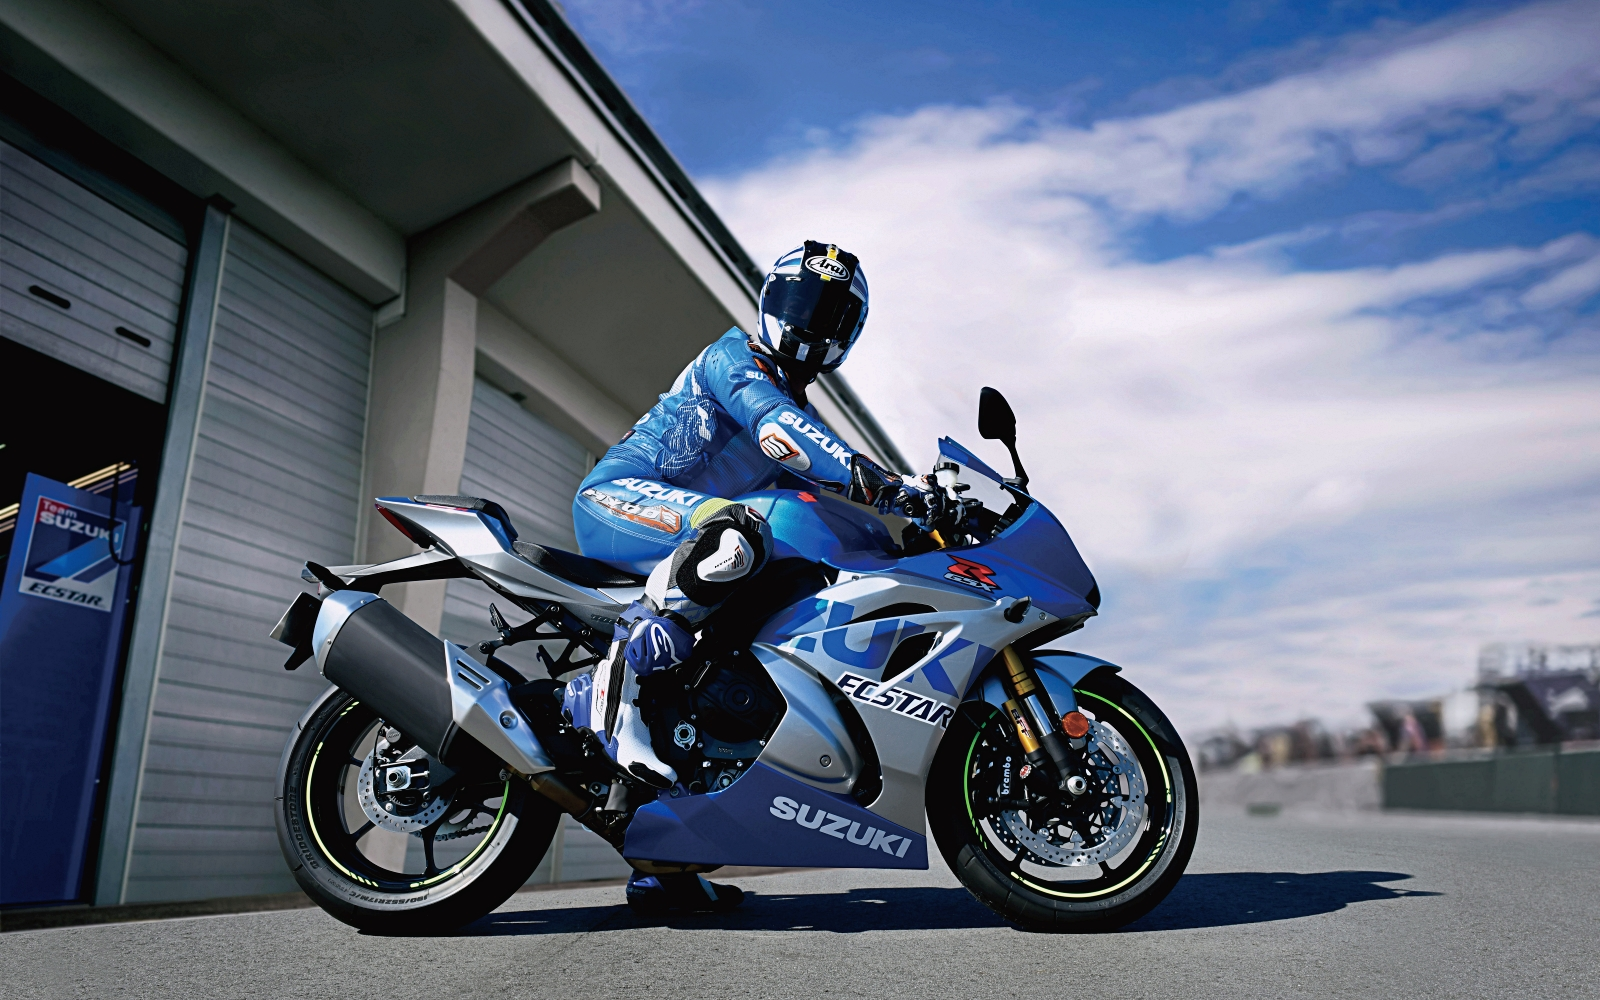 Suzuki announces its 100th Anniversary series